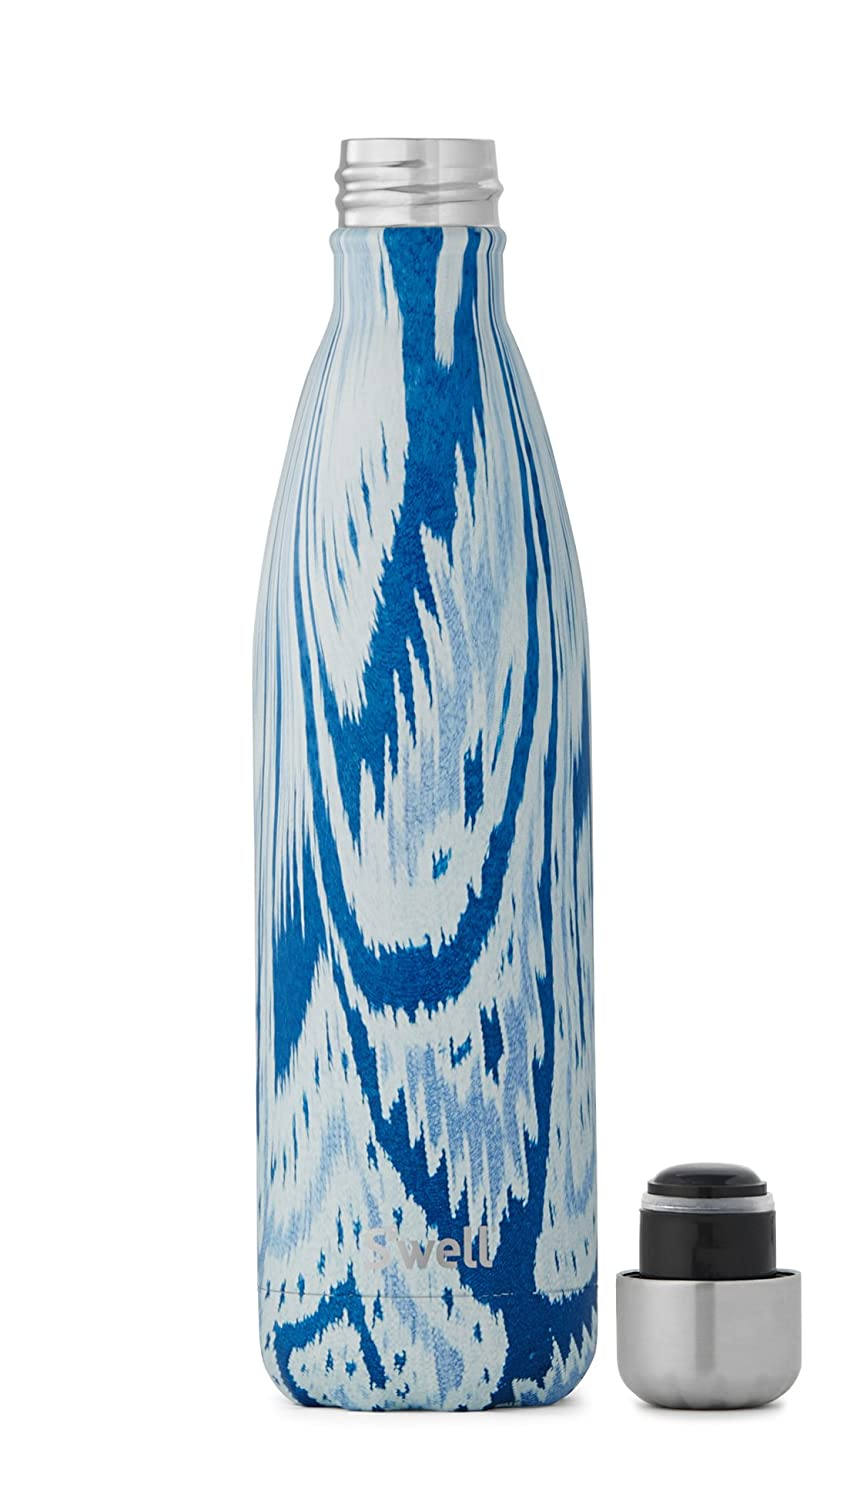 Swell 10025-B18-14301 Water Bottle 25 oz Black Marble S/'well